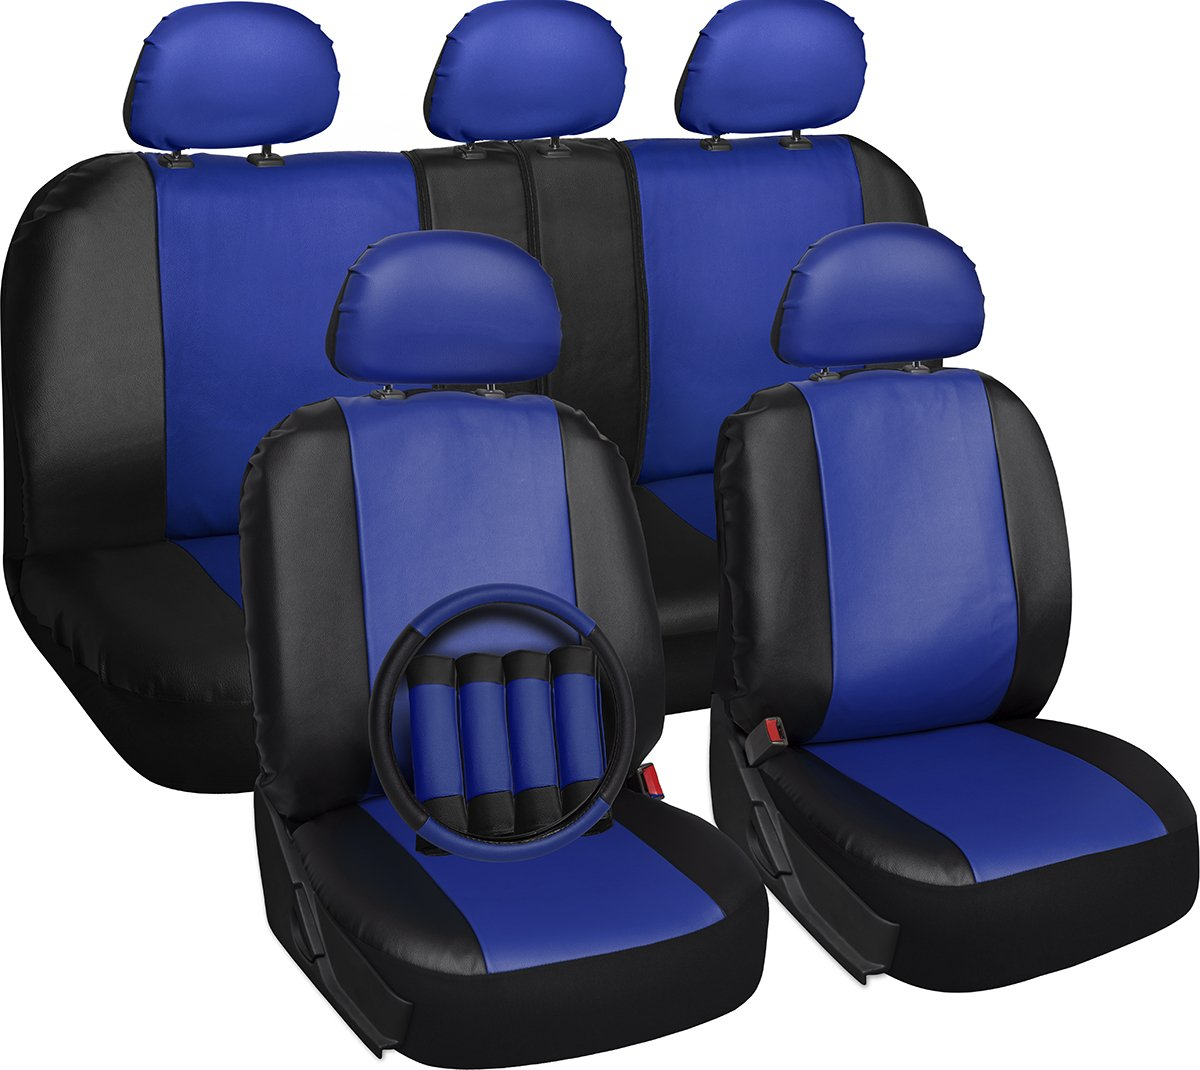 Amazon.com: OxGord 17pc Faux Leather Blue/Black Car Seat Covers Set ...